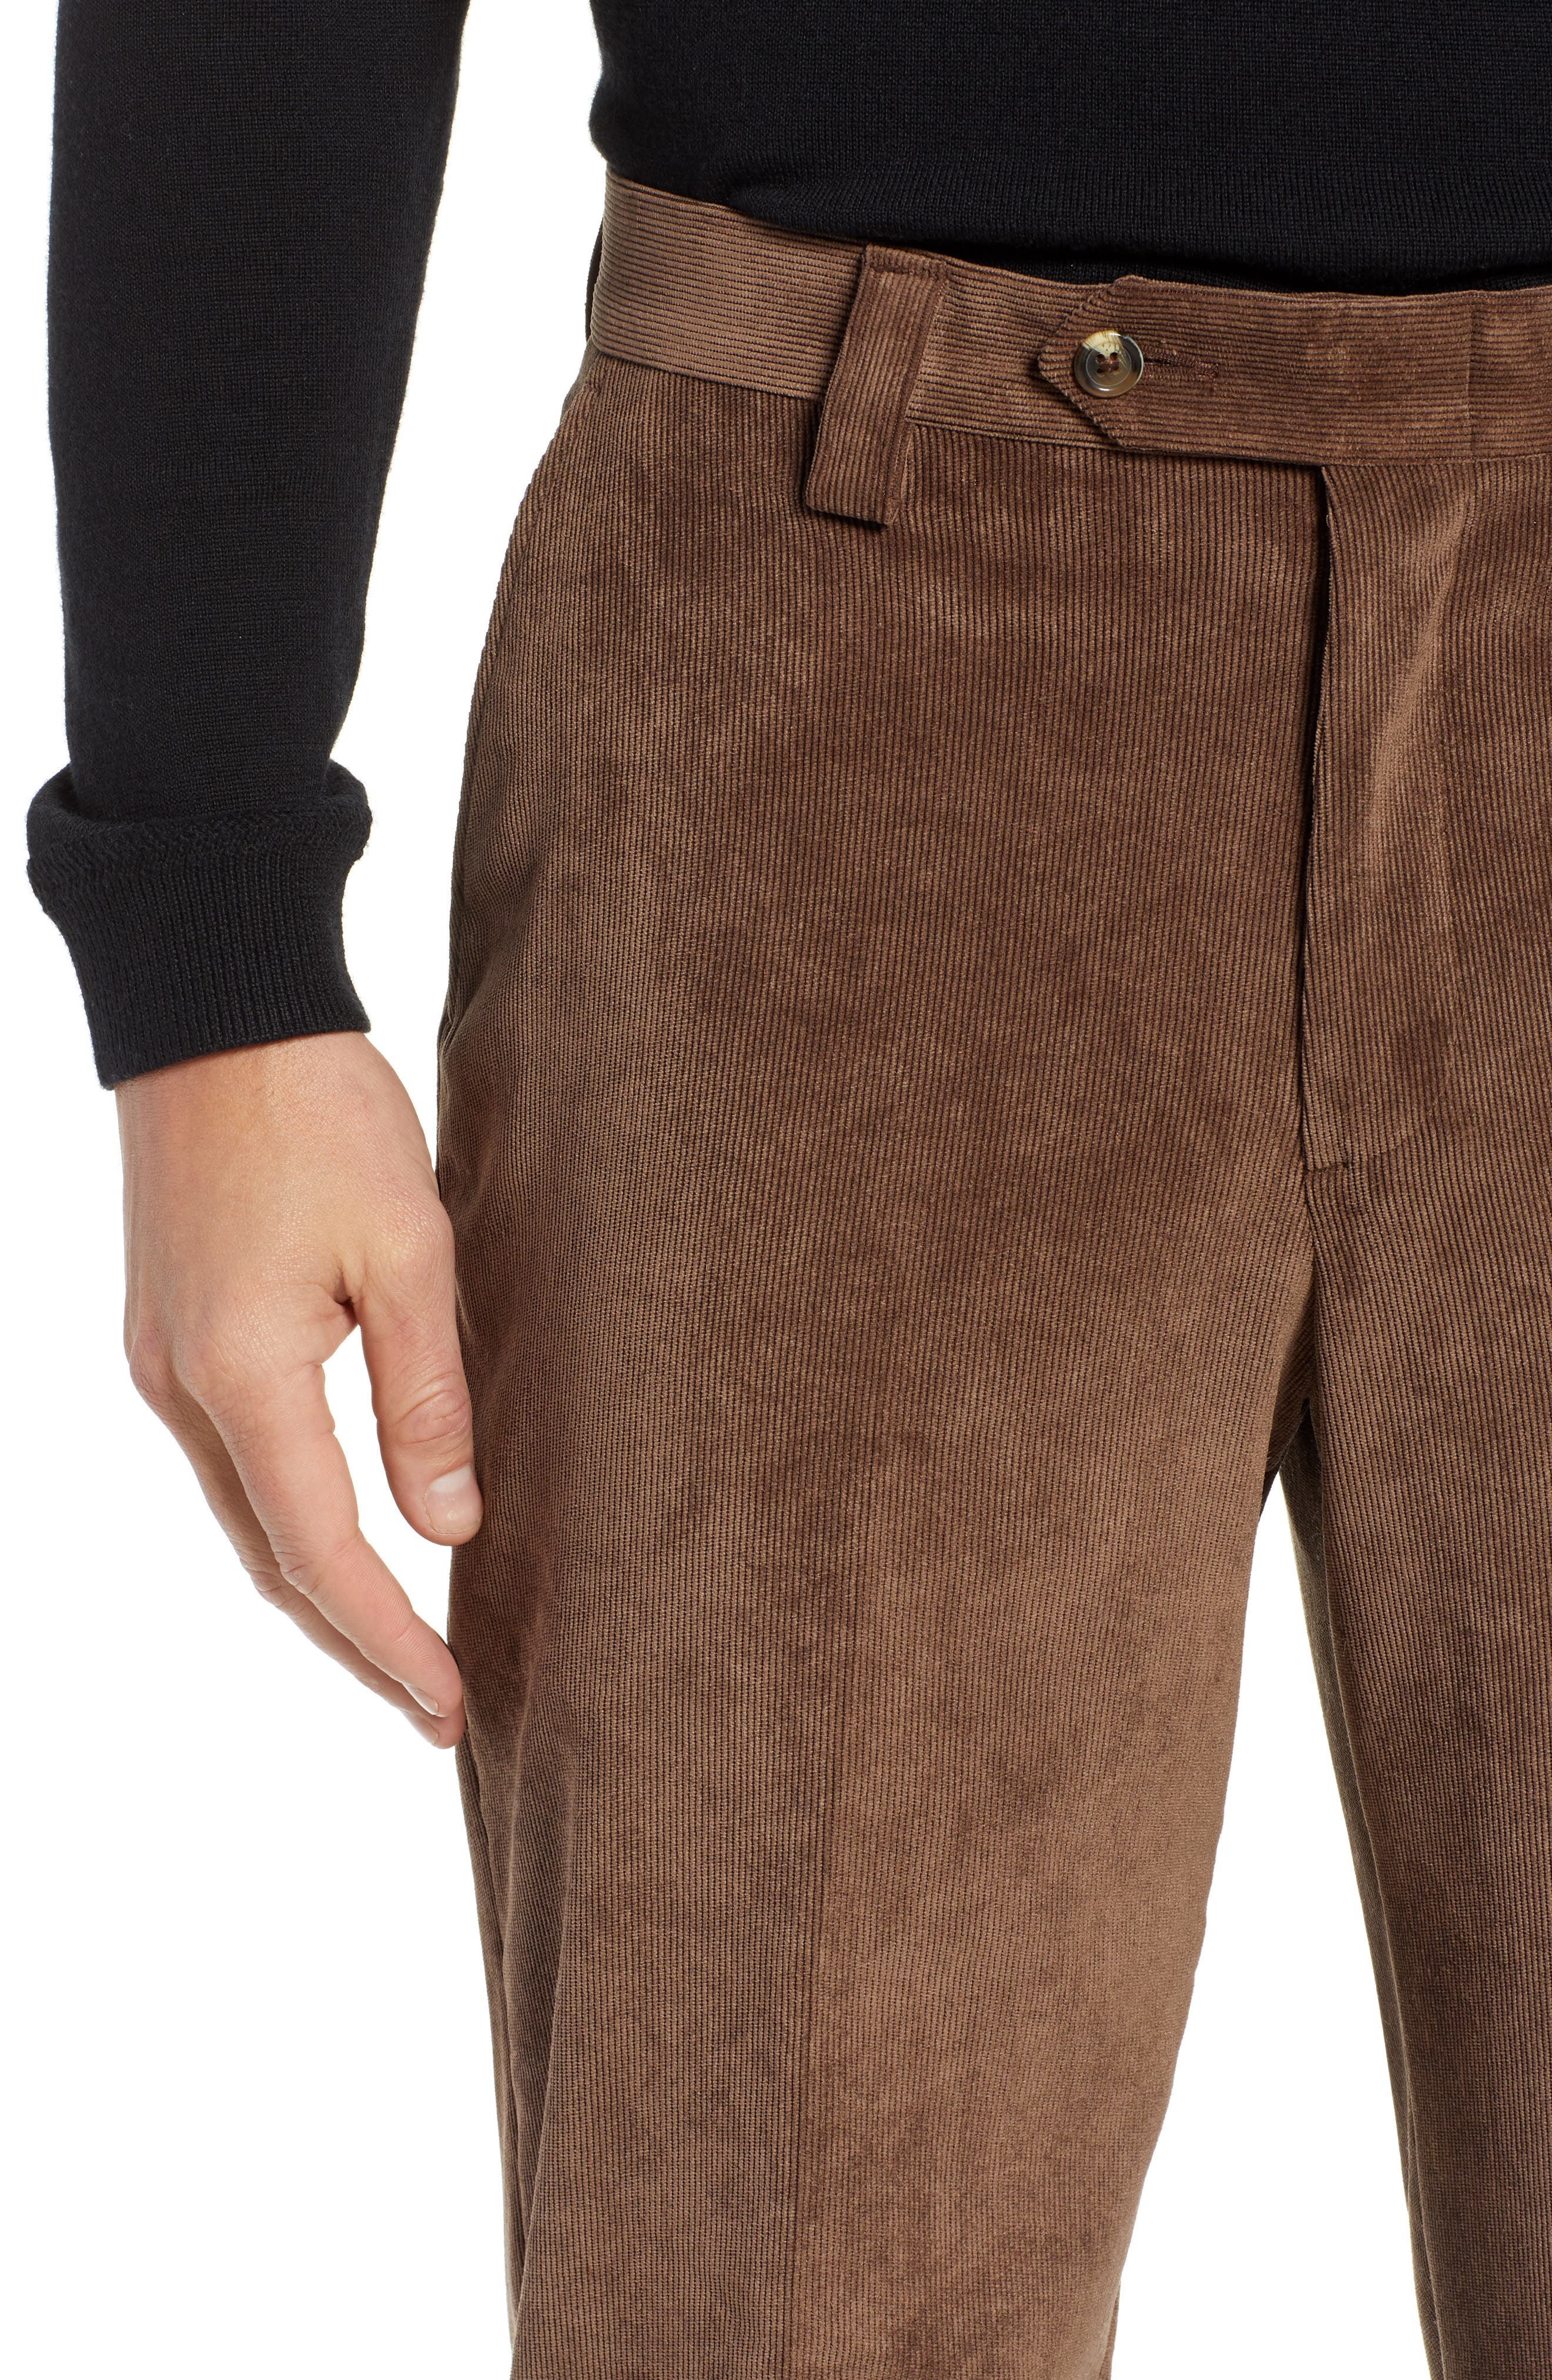 BERLE,                             Classic Fit Flat Front Corduroy Trousers,                             Alternate thumbnail 4, color,                             200